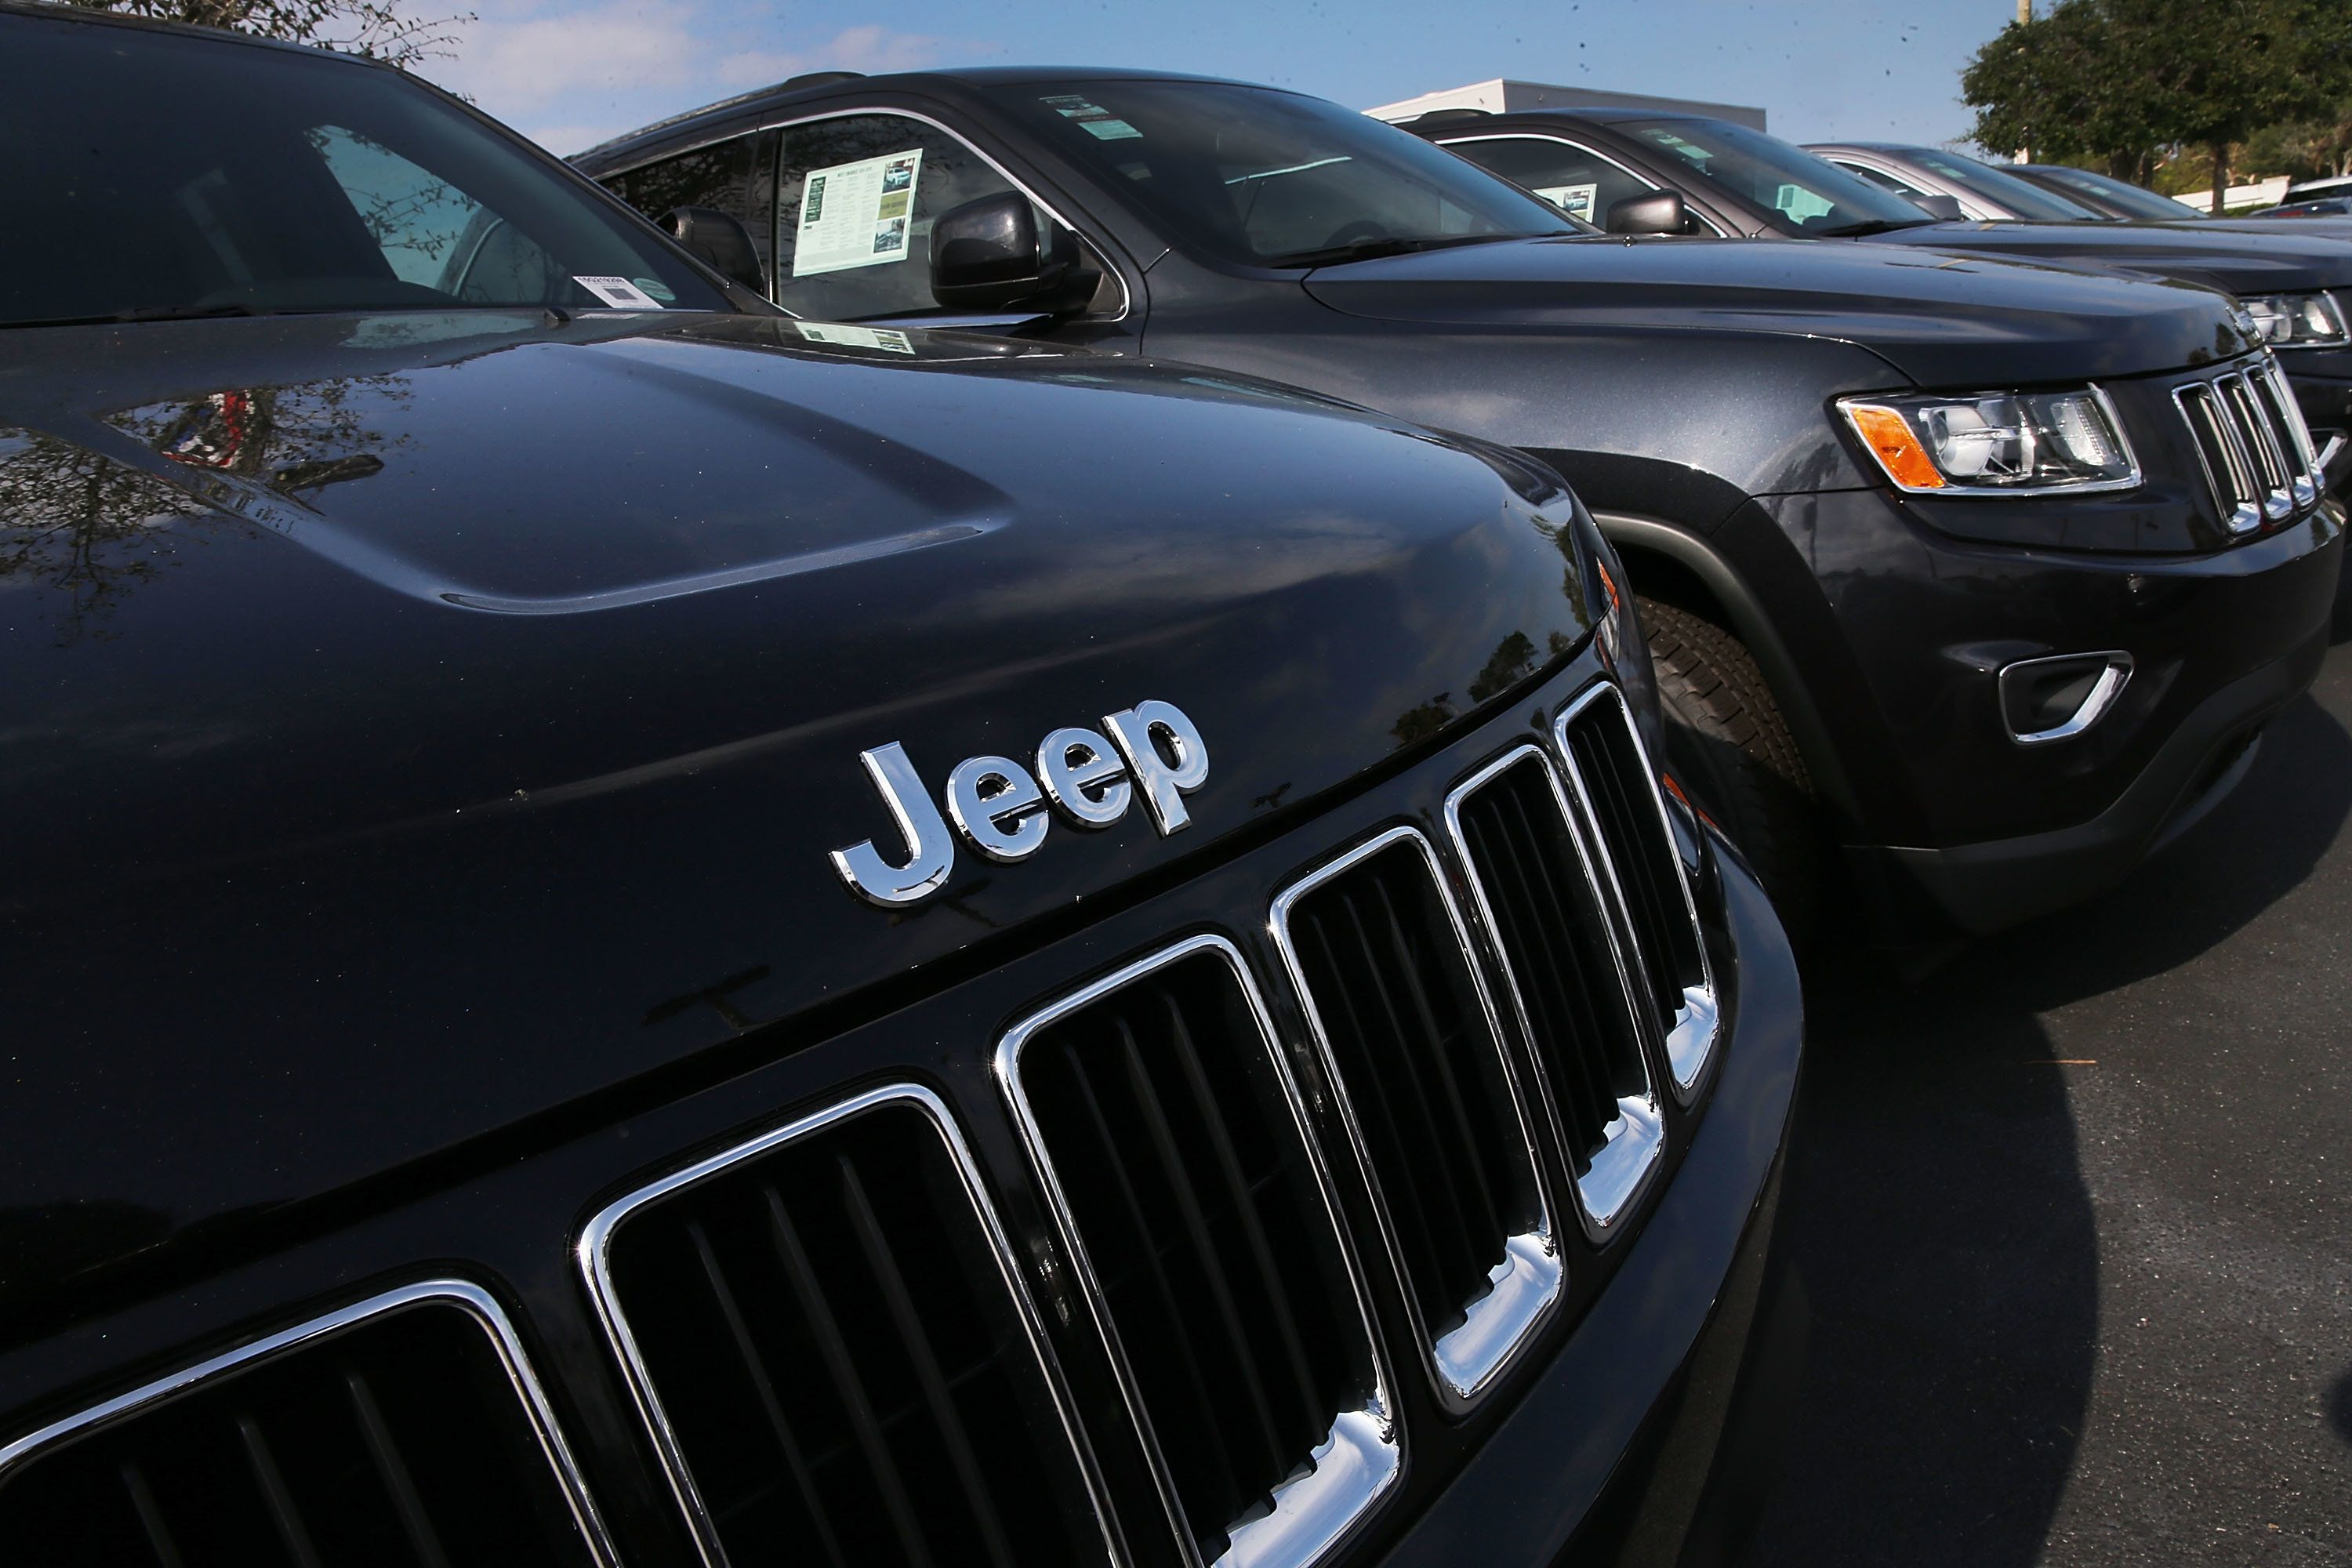 MIAMI, FL - APRIL 22:  2015 Jeep Grand Cherokee vehicles are seen on a sales lot as Fiat Chrysler Automobiles announced that it is recalling more than 1.1 million cars and SUVs worldwide because the vehicles may roll away after drivers exit the vehicles on April 22, 2016 in Miami, Florida. The recall covers the 2012-2014 Dodge Charger and Chrysler 300 sedans and 2014-2015 Jeep Grand Cherokee sport utility vehicles.  (Photo by Joe Raedle/Getty Images)